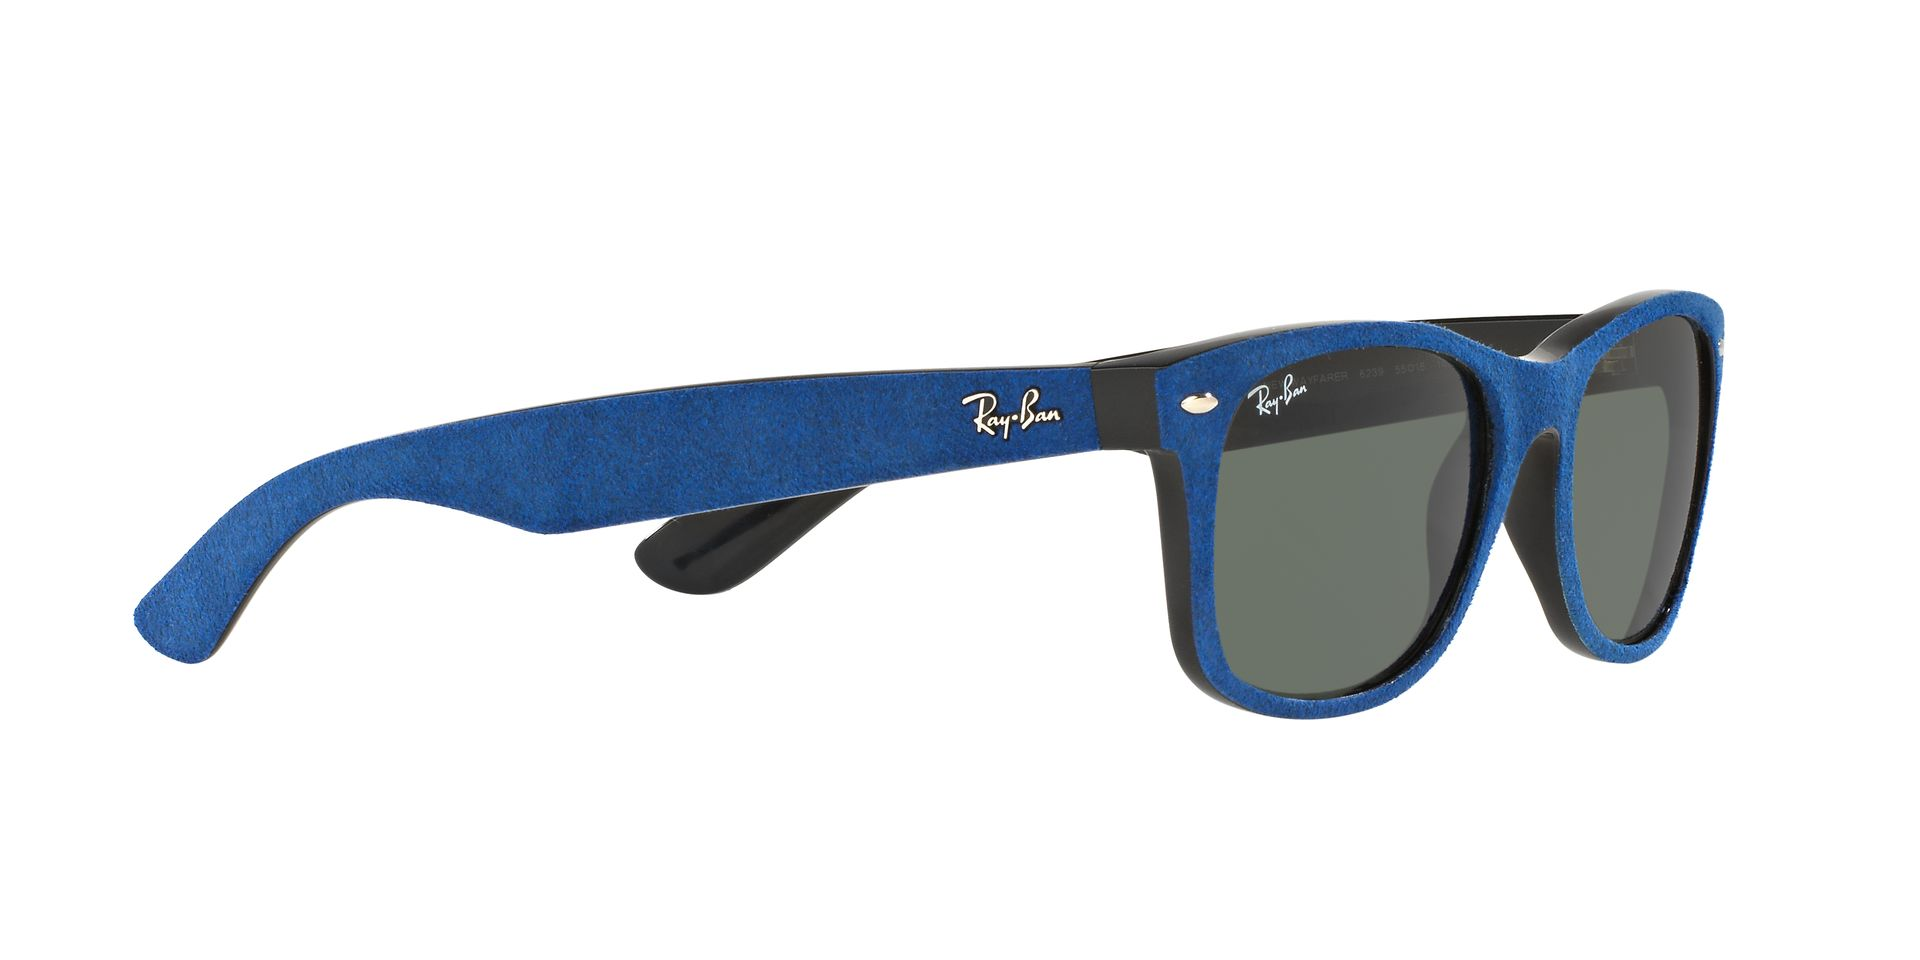 3ad8e539a1676 Brillenchic-onlineshop in Berlin - Ray Ban NEW WAYFARER RB 2132 6239 ...